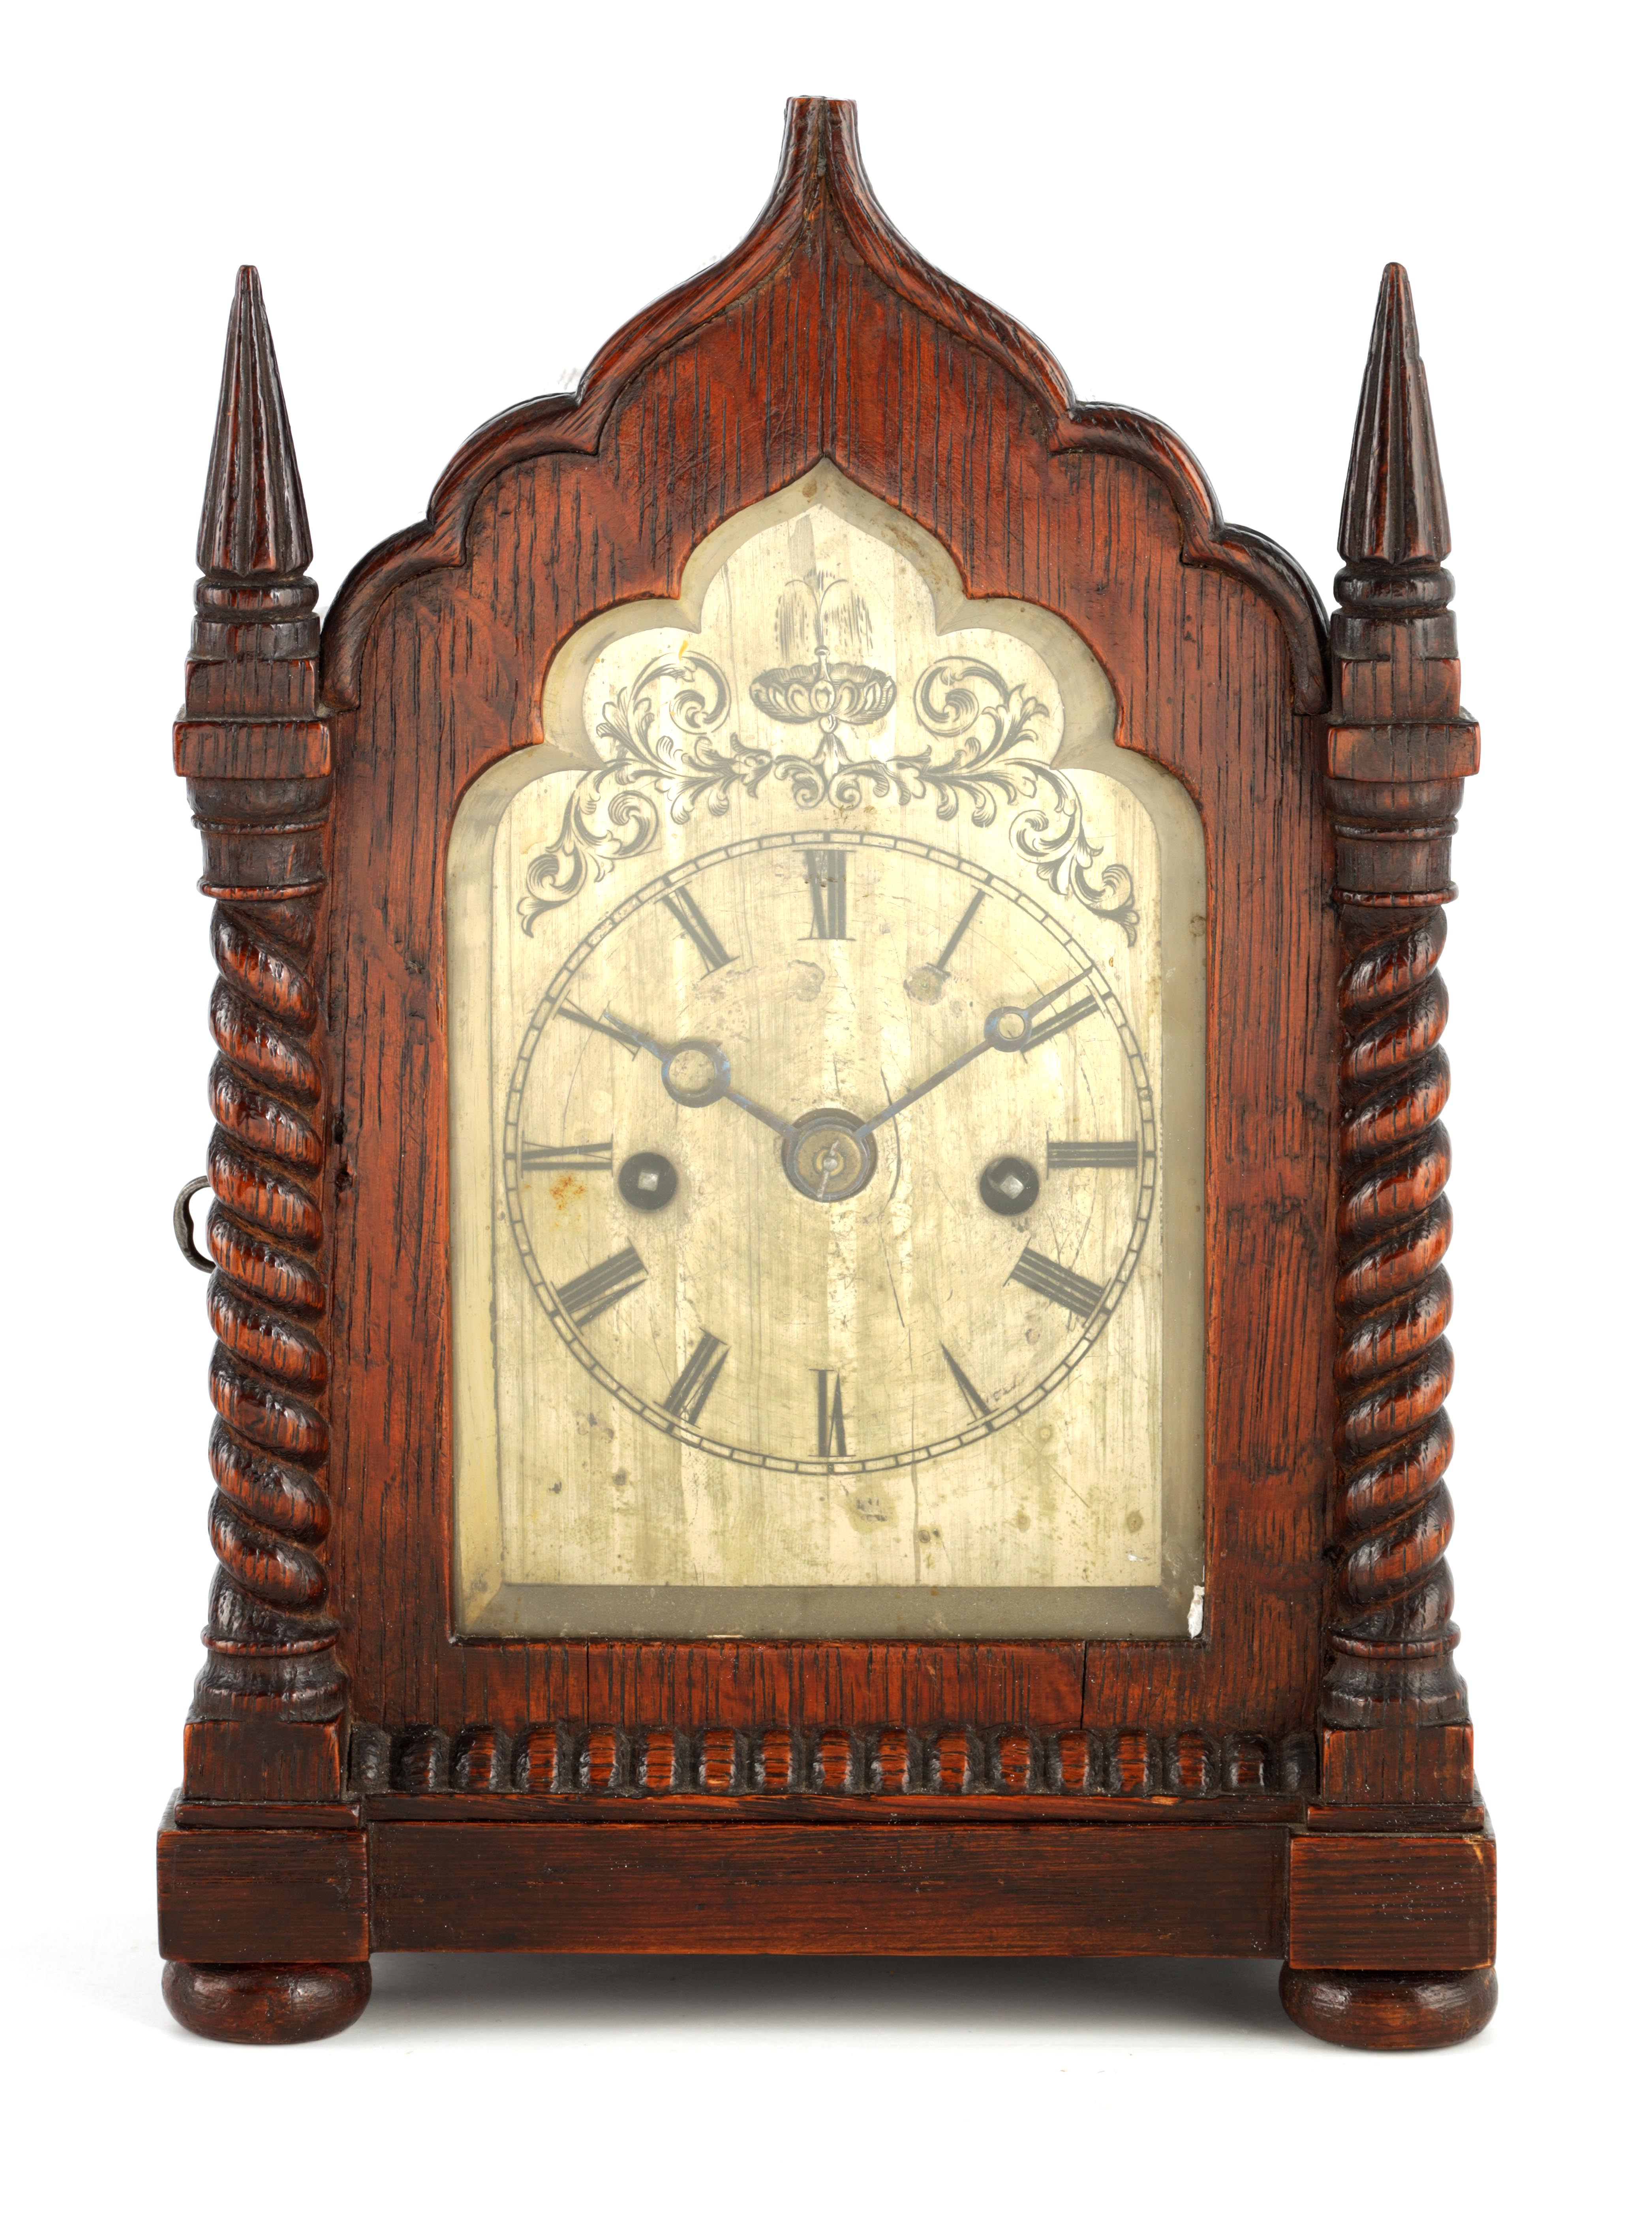 A SMALL MID 19TH CENTURY OAK CASED DOUBLE FUSEE MANTEL CLOCK the gothic style case with twisted